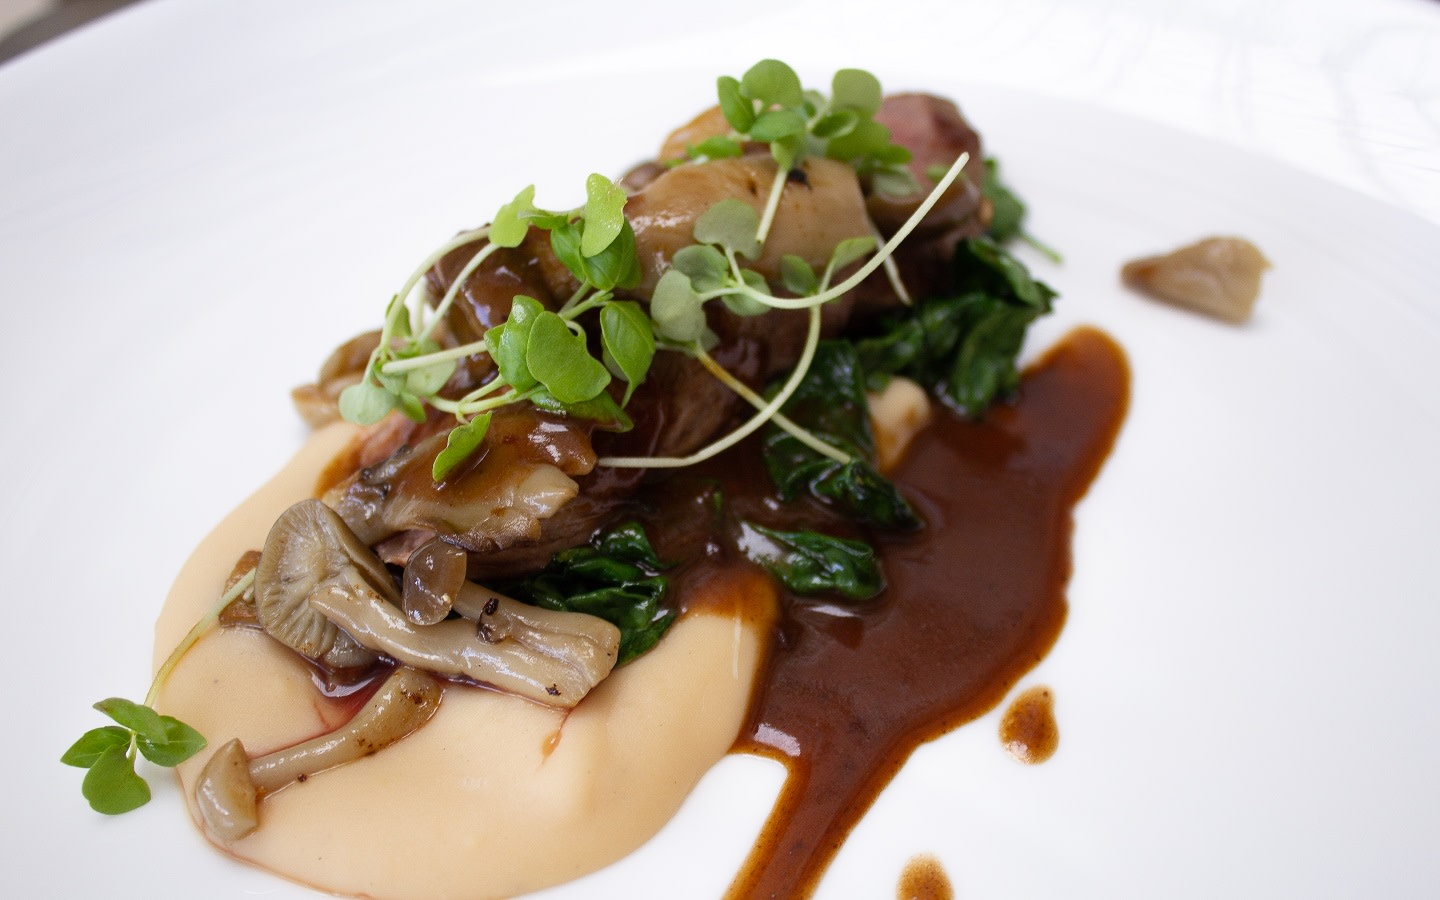 Seared Lamb Loin, Whipped White Bean Cream, Wilted Spinach, Exotic Mushrooms, Cocoa Lamb Red Wine